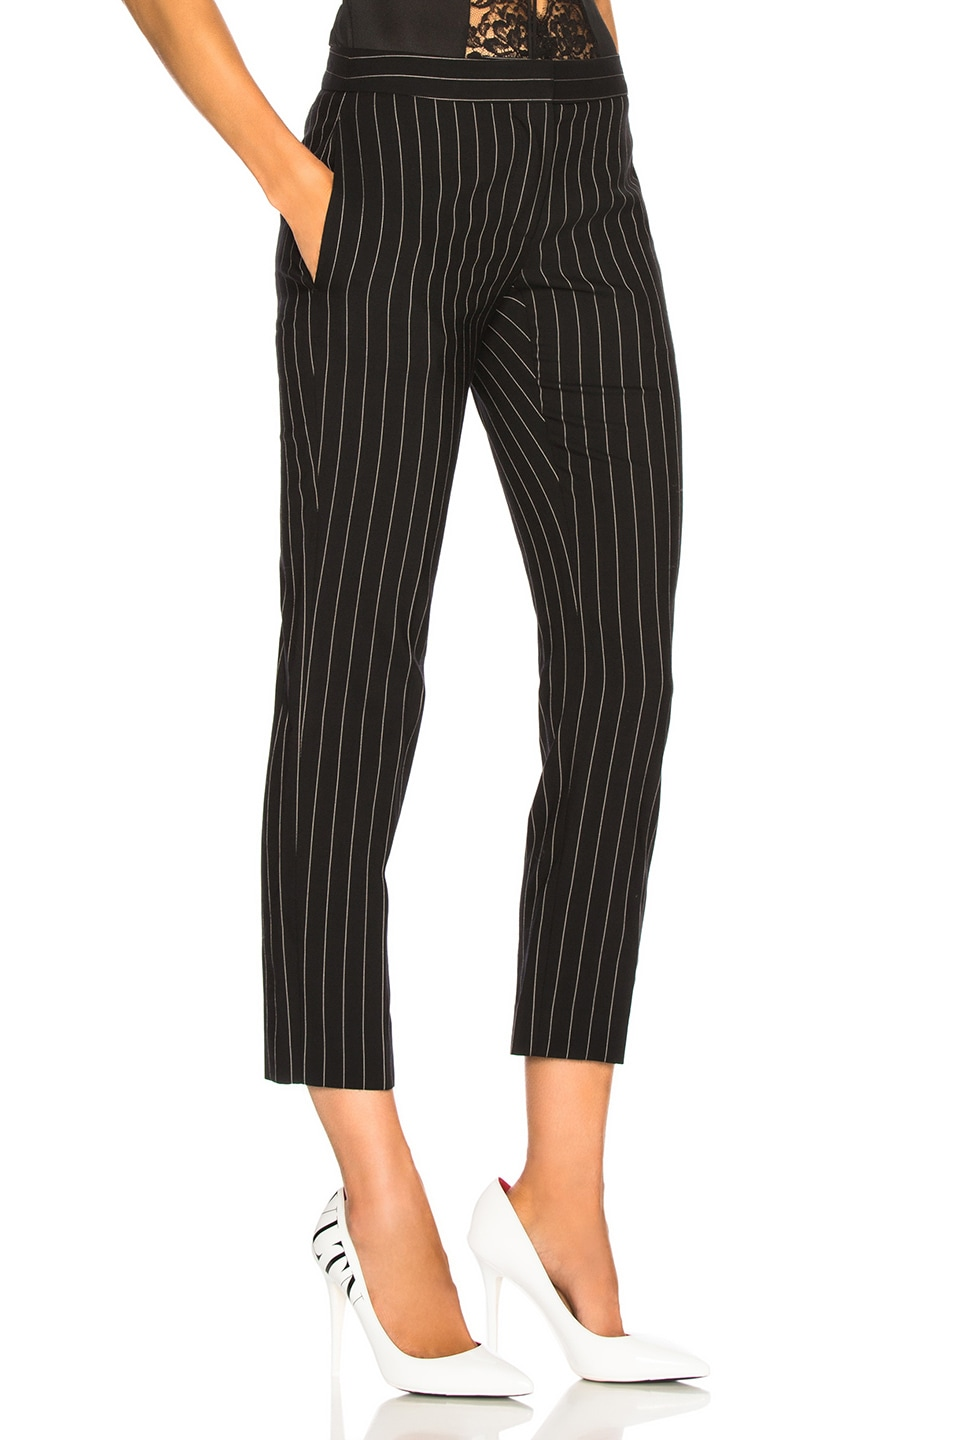 Image 2 of Alexander McQueen Pinstripe Cigarette Trousers in Black & White